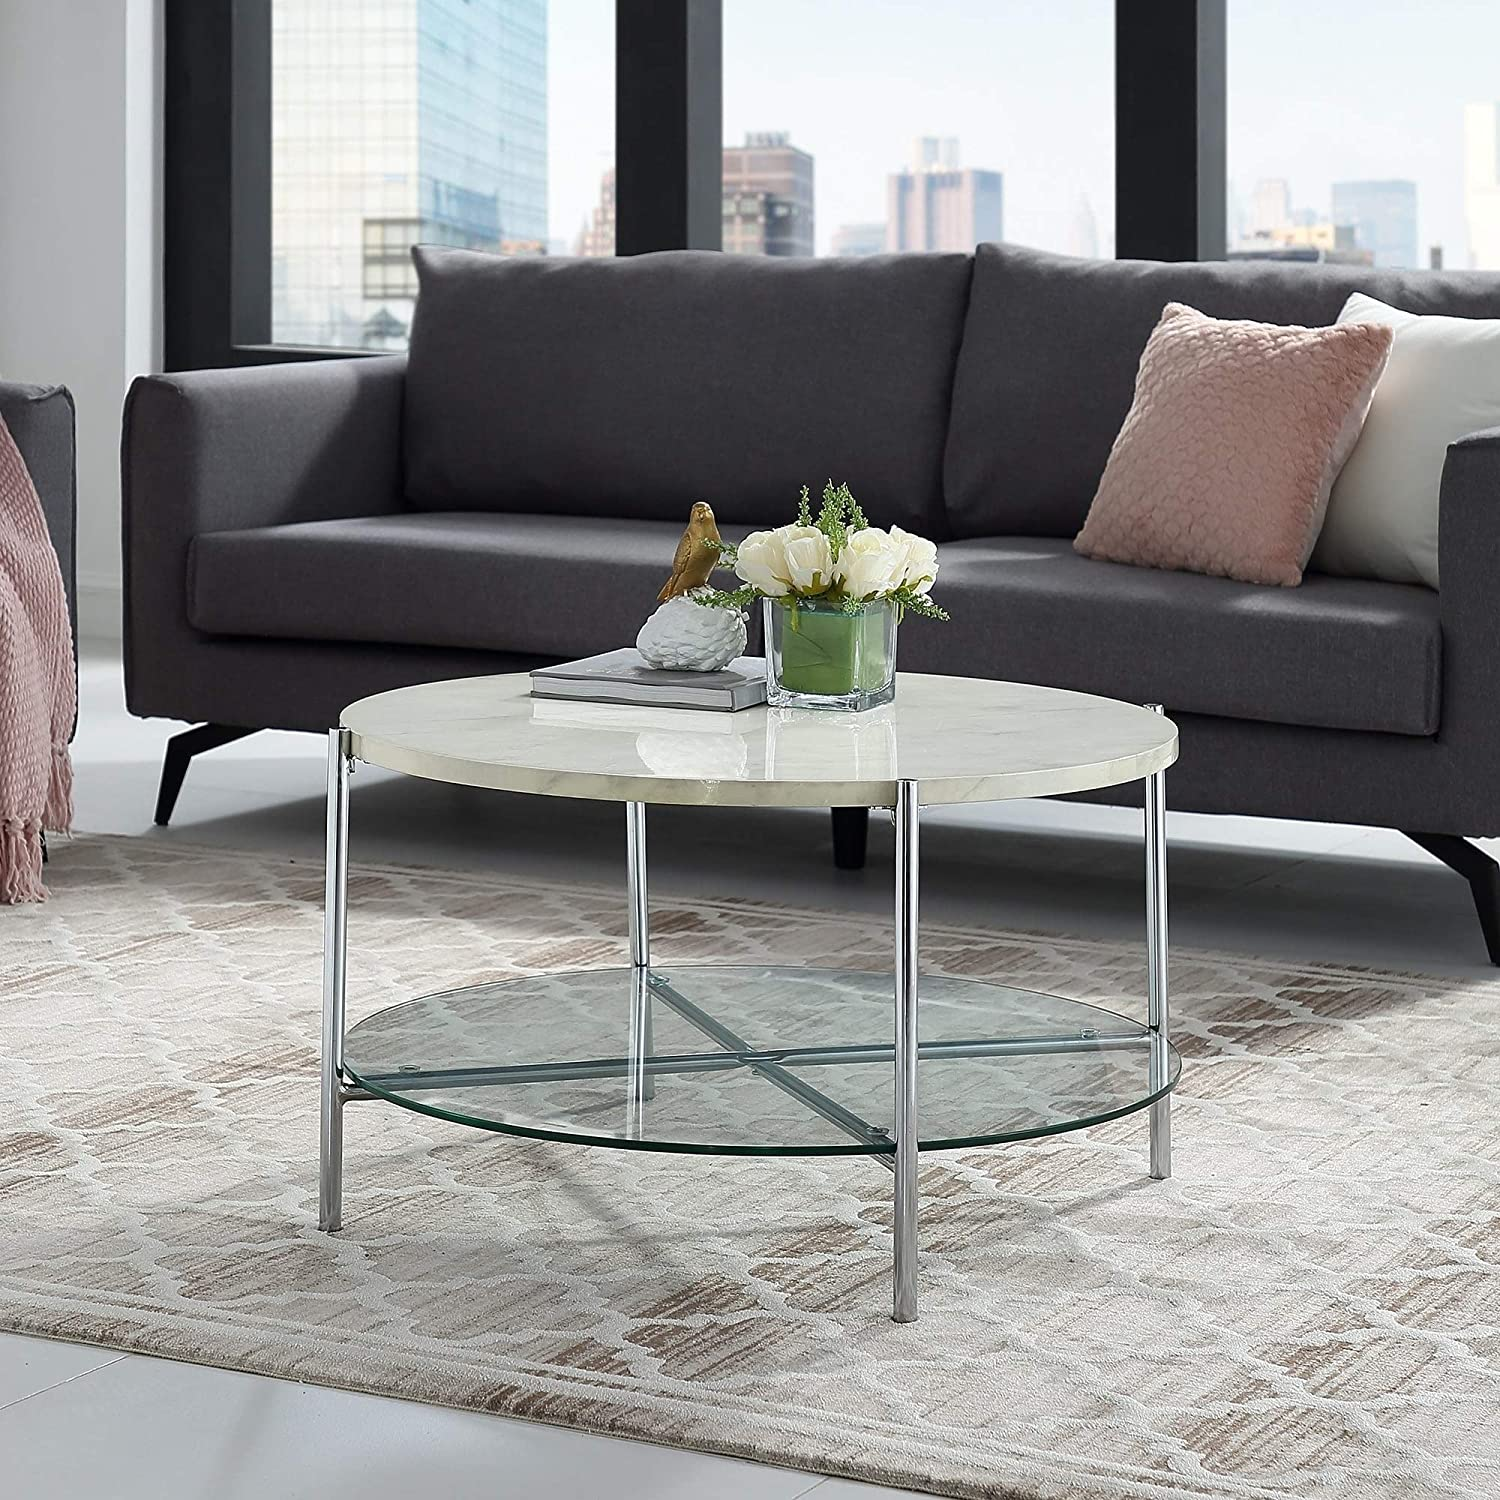 Overstock White Coffee Table.Amazon Com Overstock 32 Round Faux Marble Coffee Table 32 X 32 X